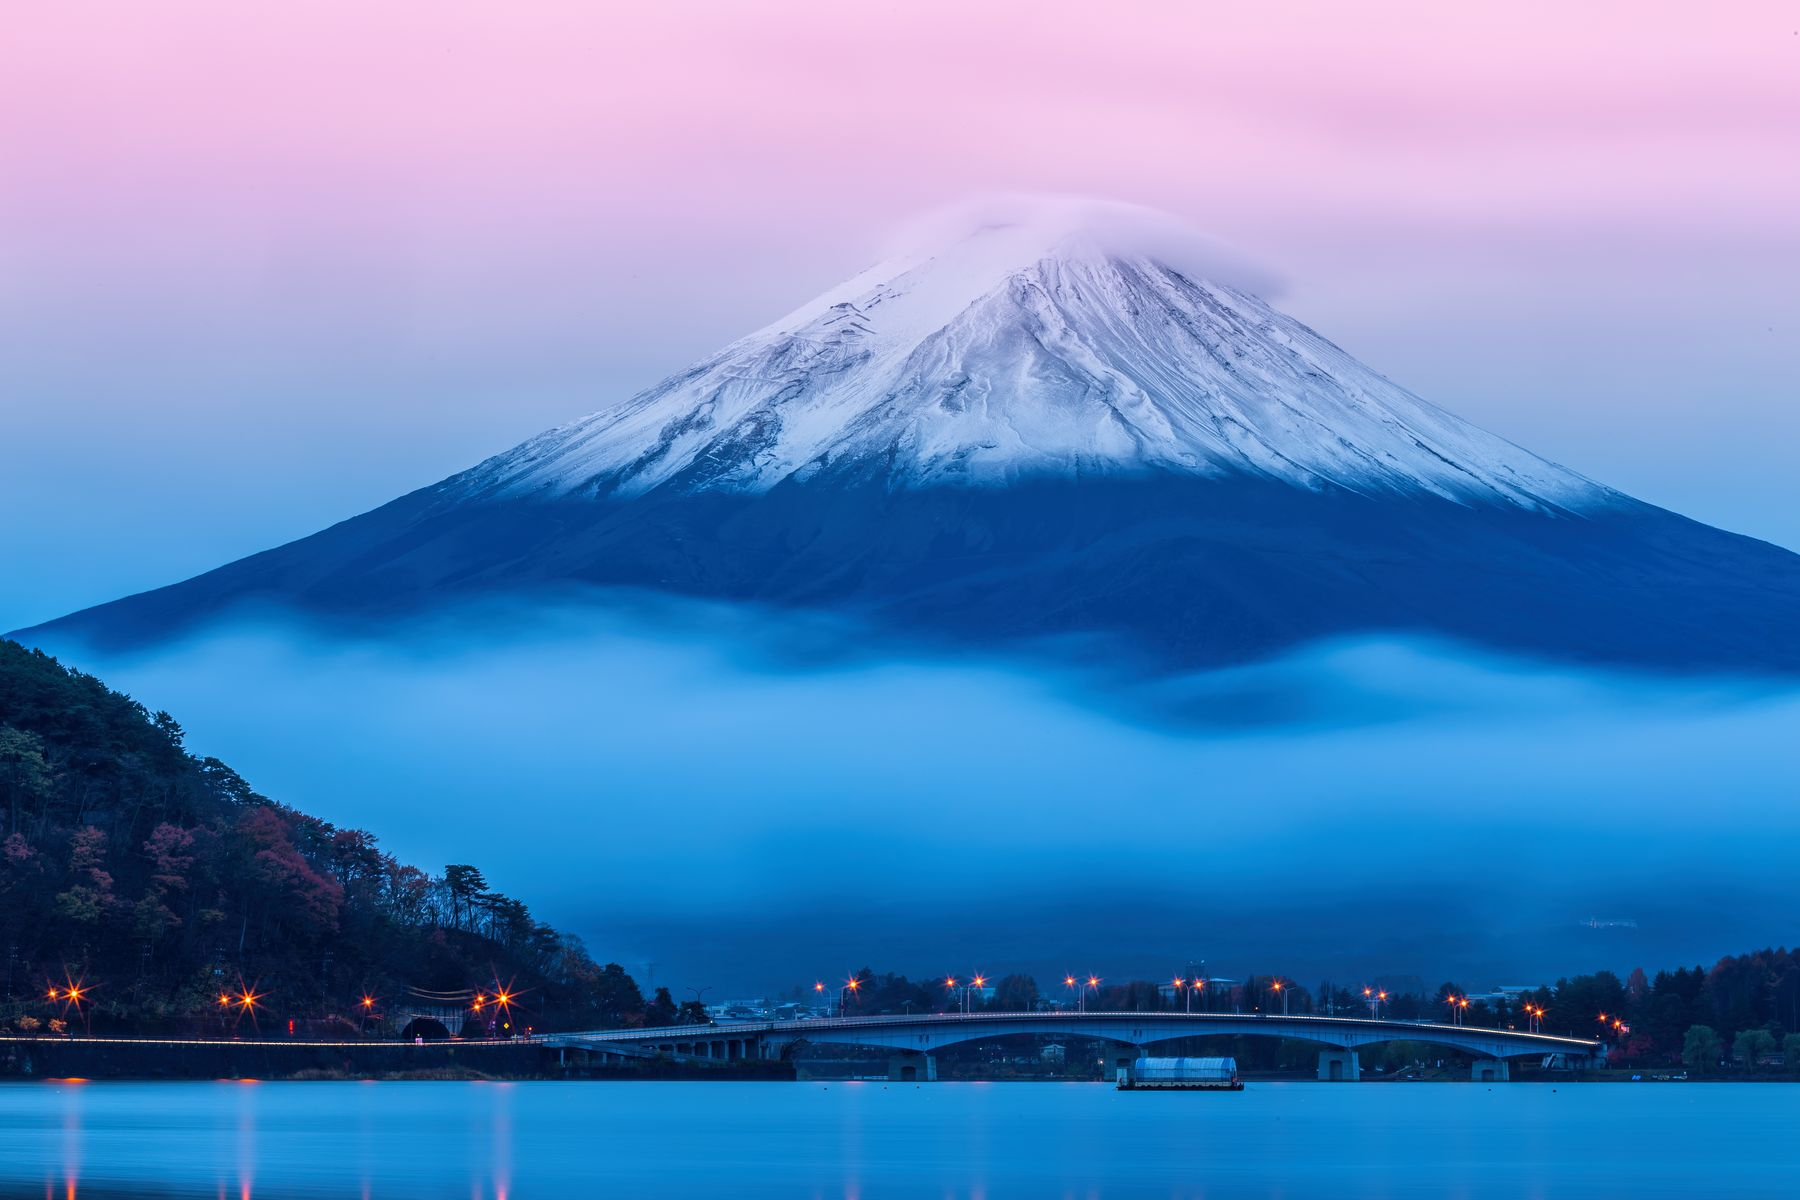 Mount Fuji, Japan - a country that has potential for joining the  Australia travel bubble